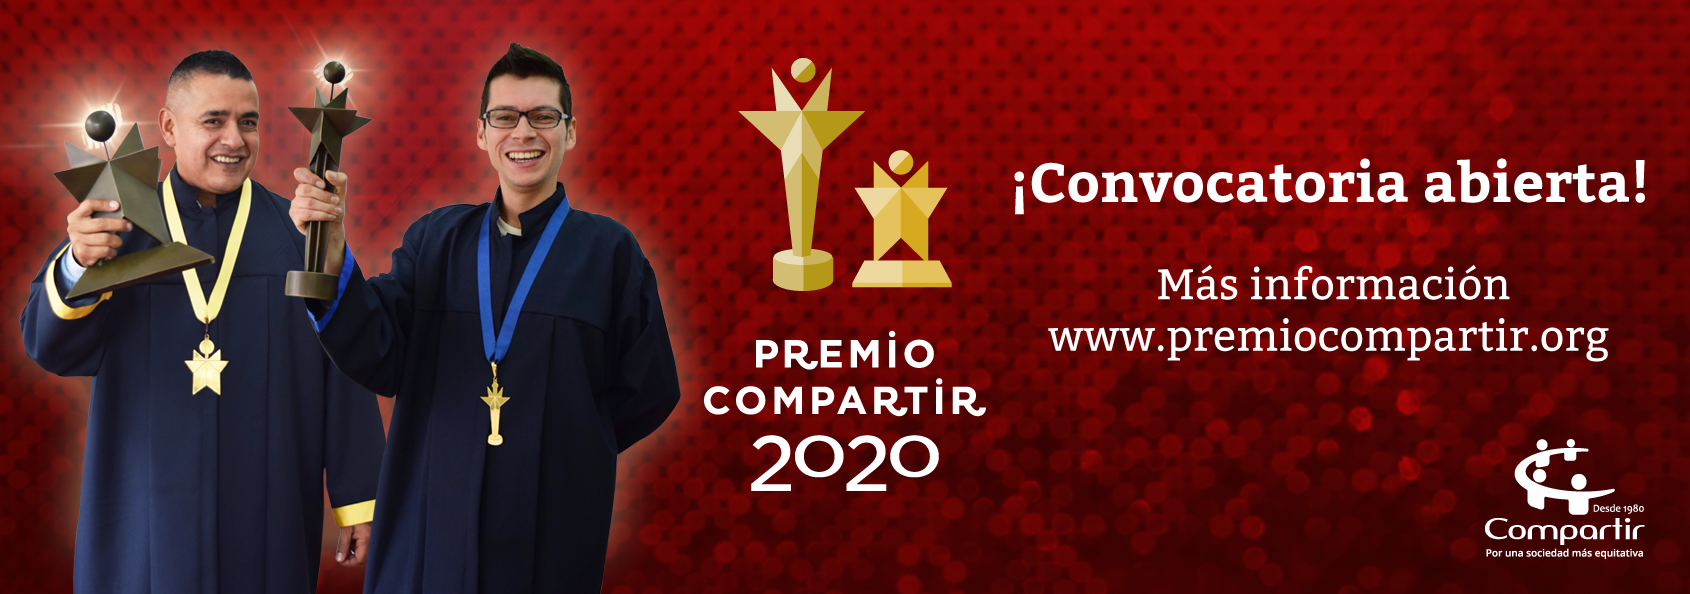 Convocatoria Premio Compartir 2020